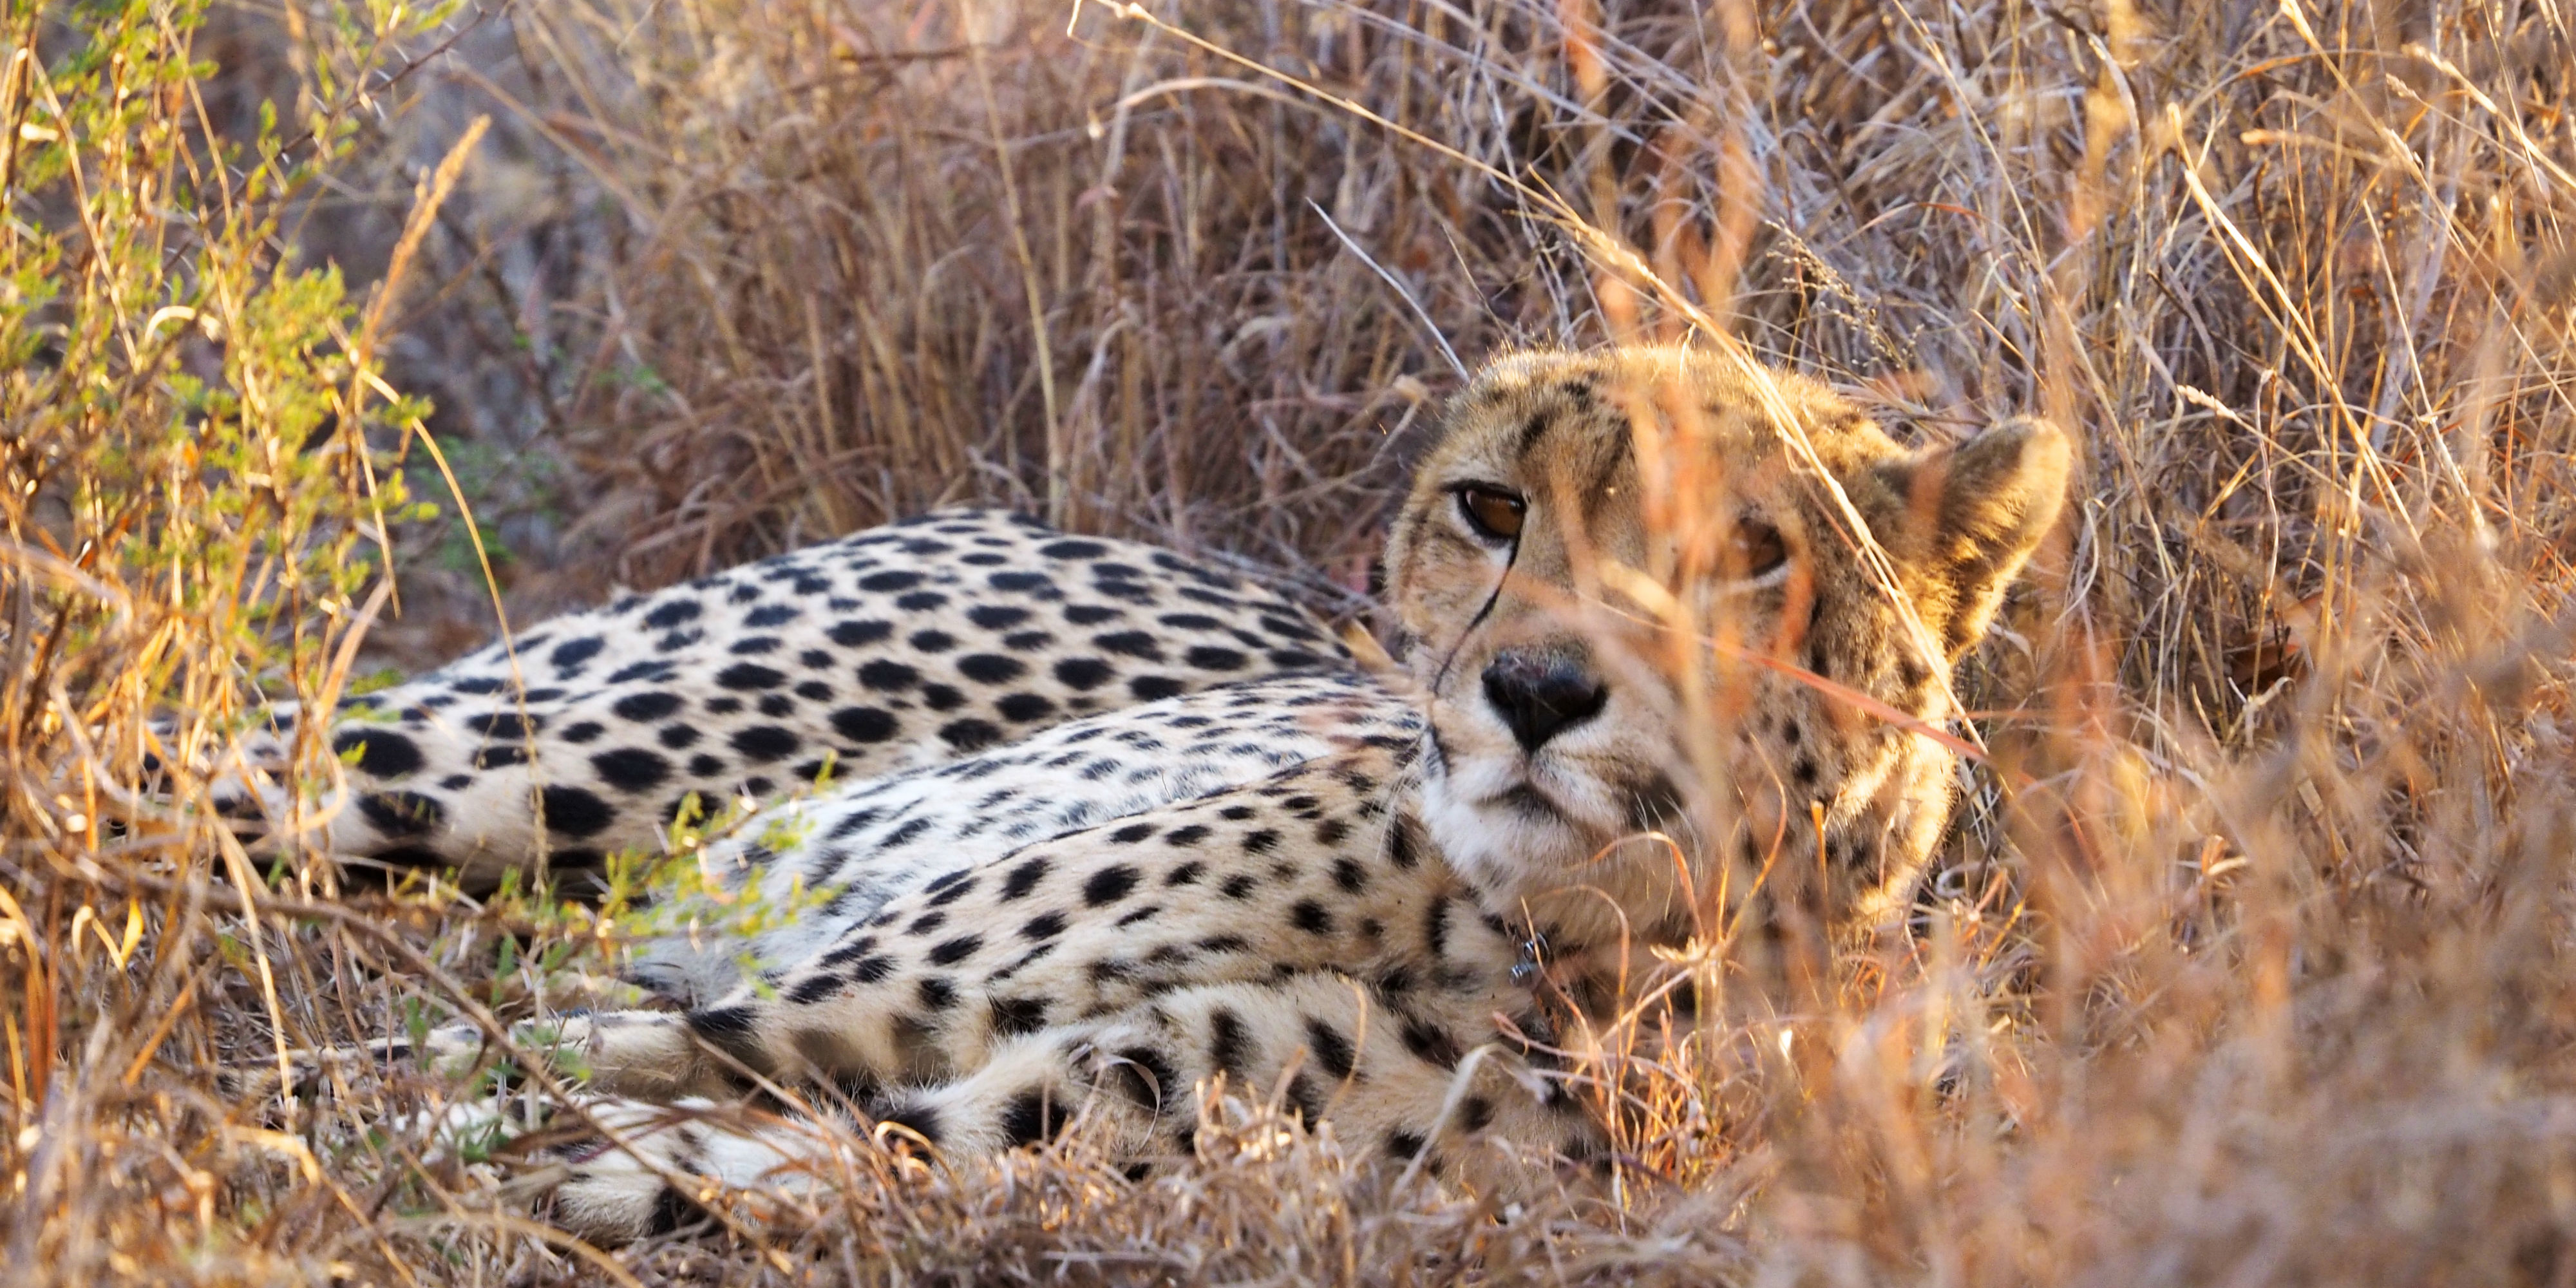 A female cheetah peers through the South African grassland. She is monitored as part of the GVI animal volunteer programs.